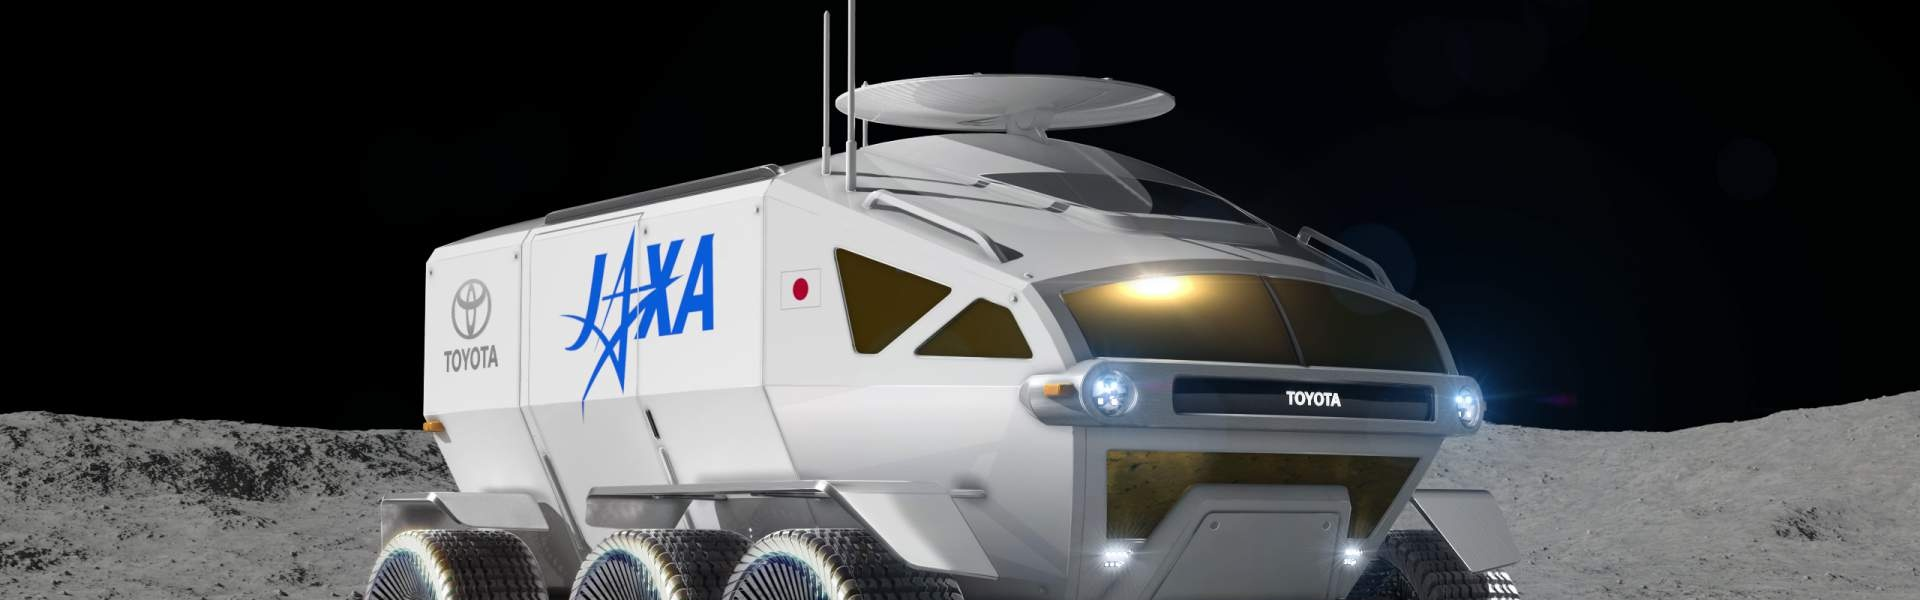 toyota-fuel-cell-electric-lunar-rover-project-1.jpg